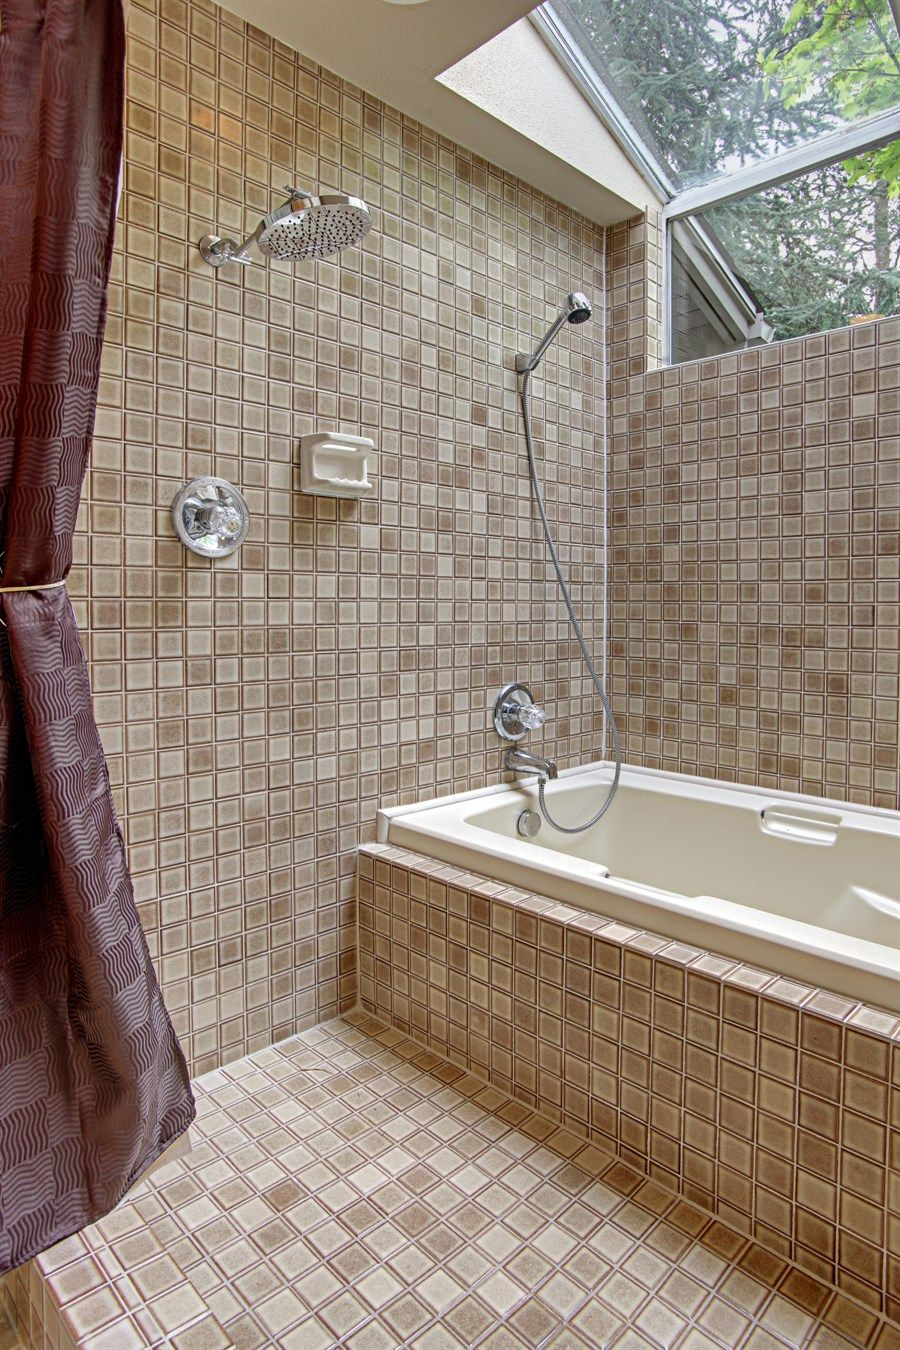 Tropical Bathroom Design With Convertible Surround Bathtub And Shower Under G